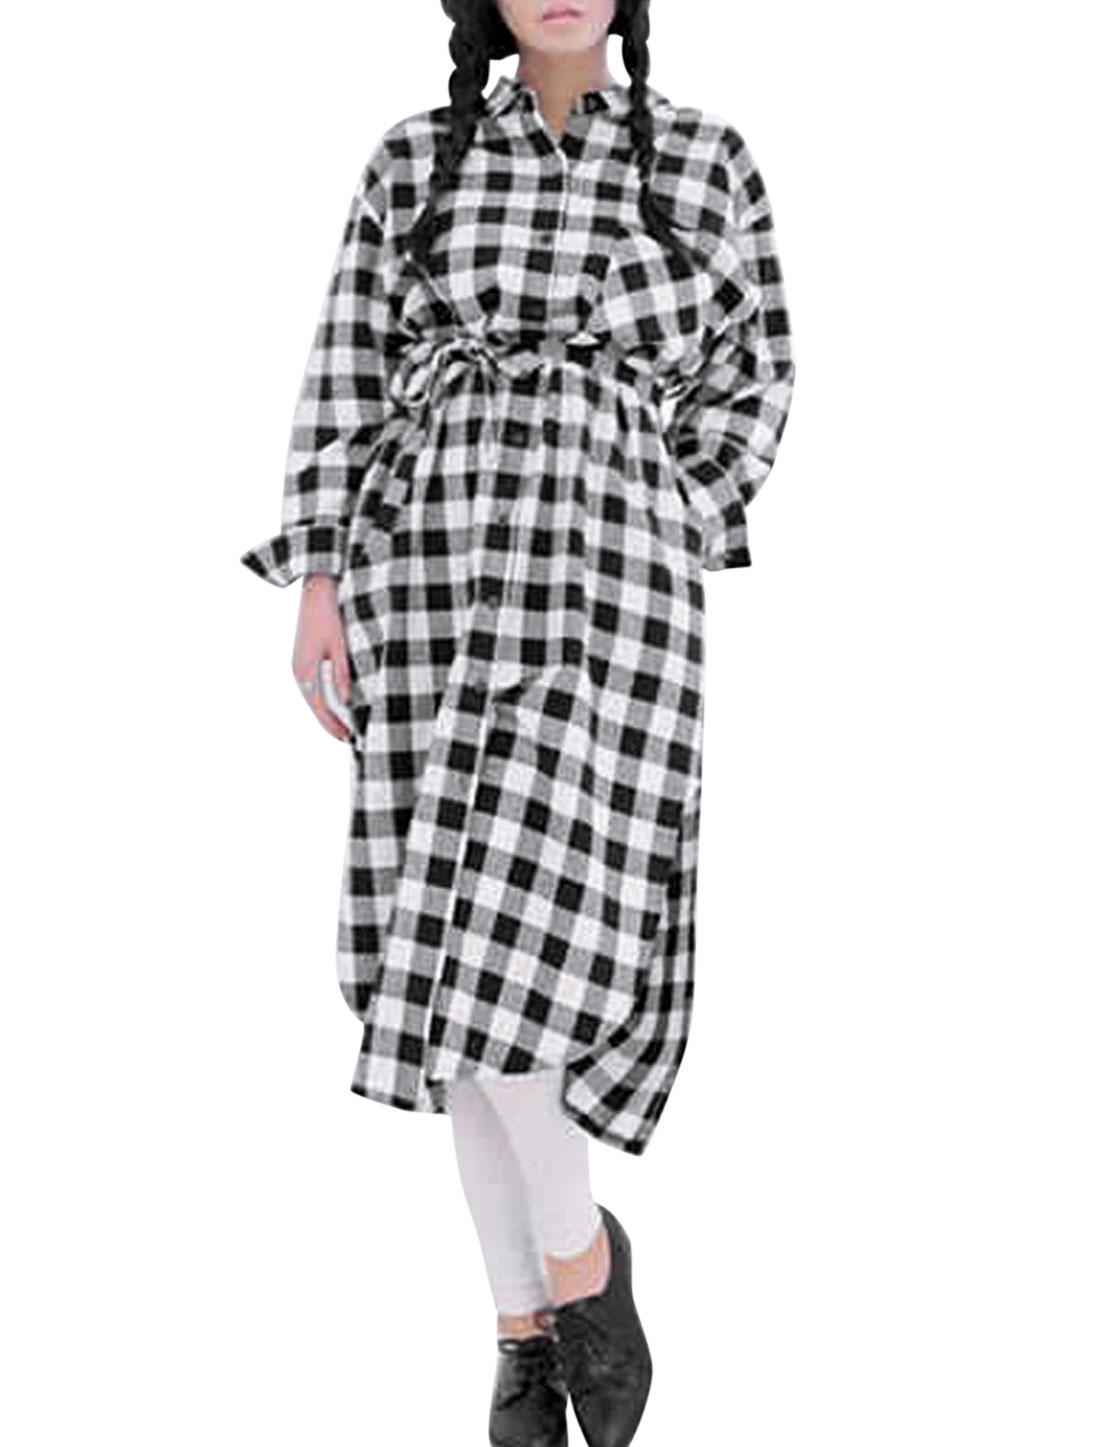 Lady Point Collar Plaids Pattern Single Breasted Casual Shirt Dress w Belt White Black S